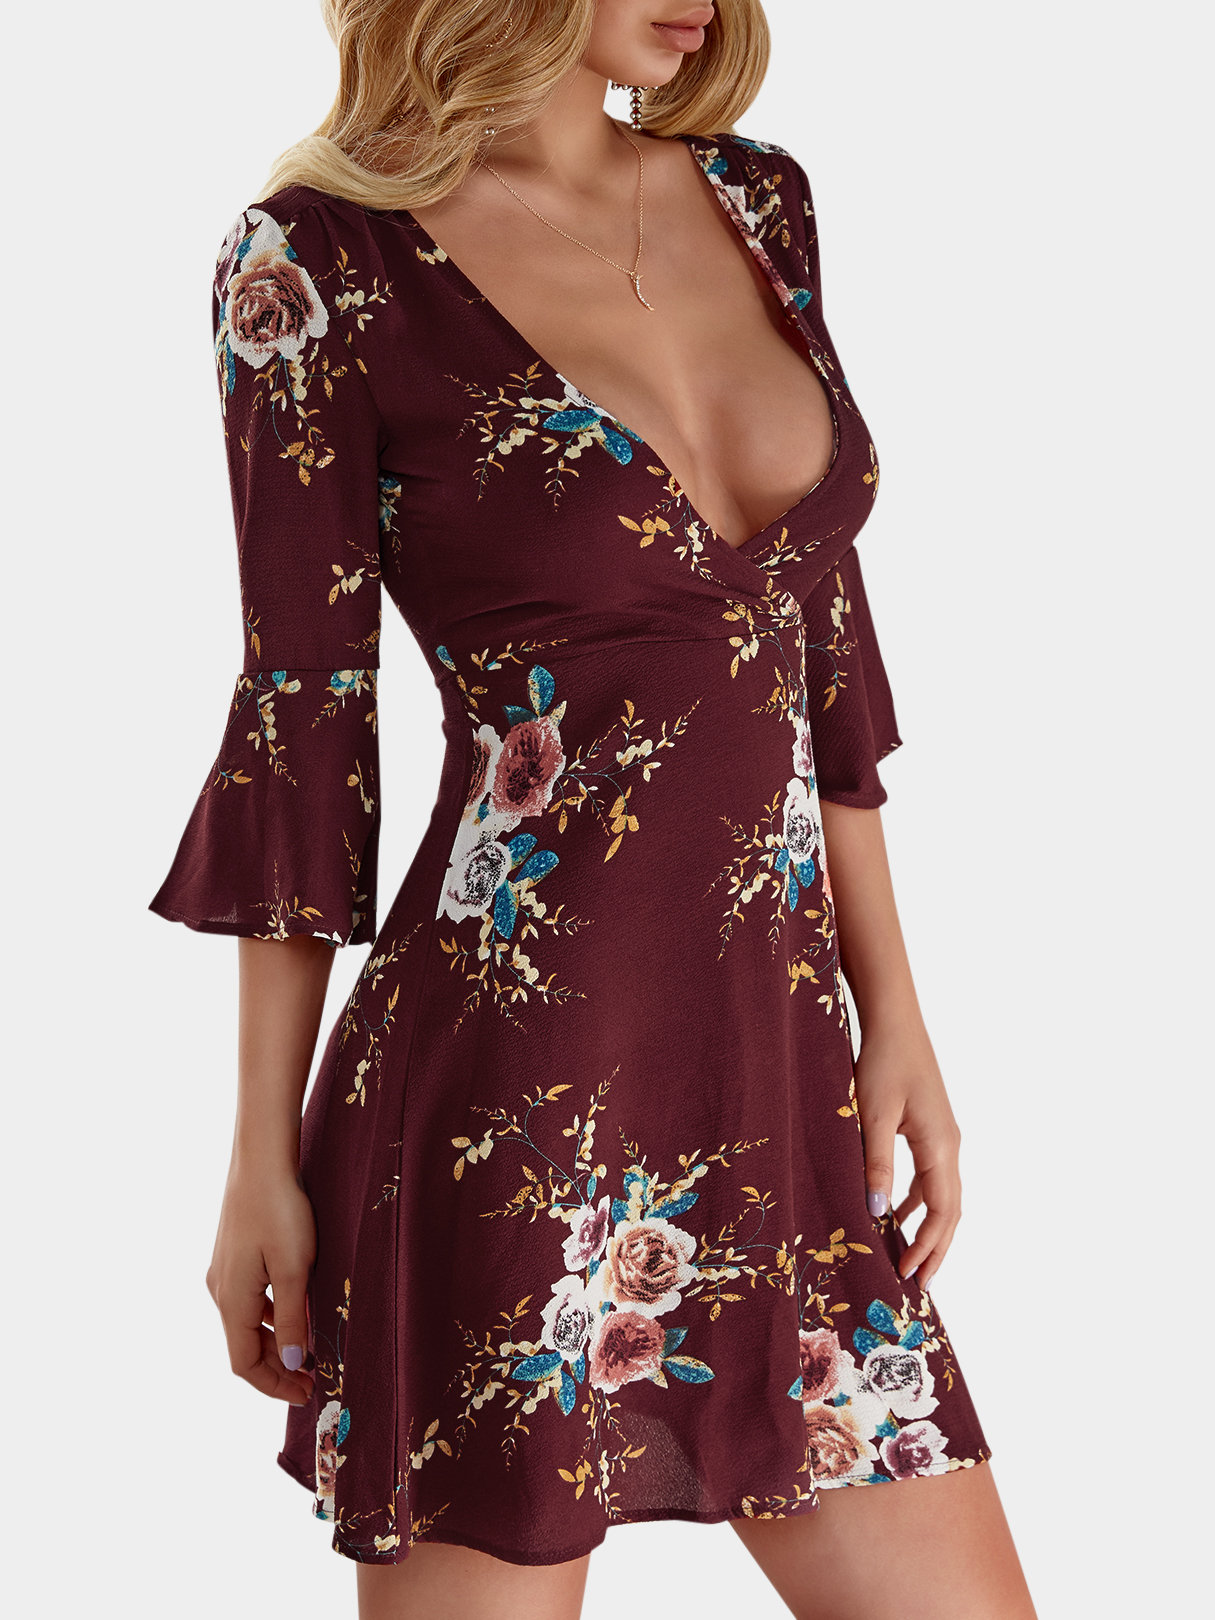 Burgundy Random Floral Print Crossed Collar Bell Sleeves Dress with Zip Design zip back stand collar plaid dress